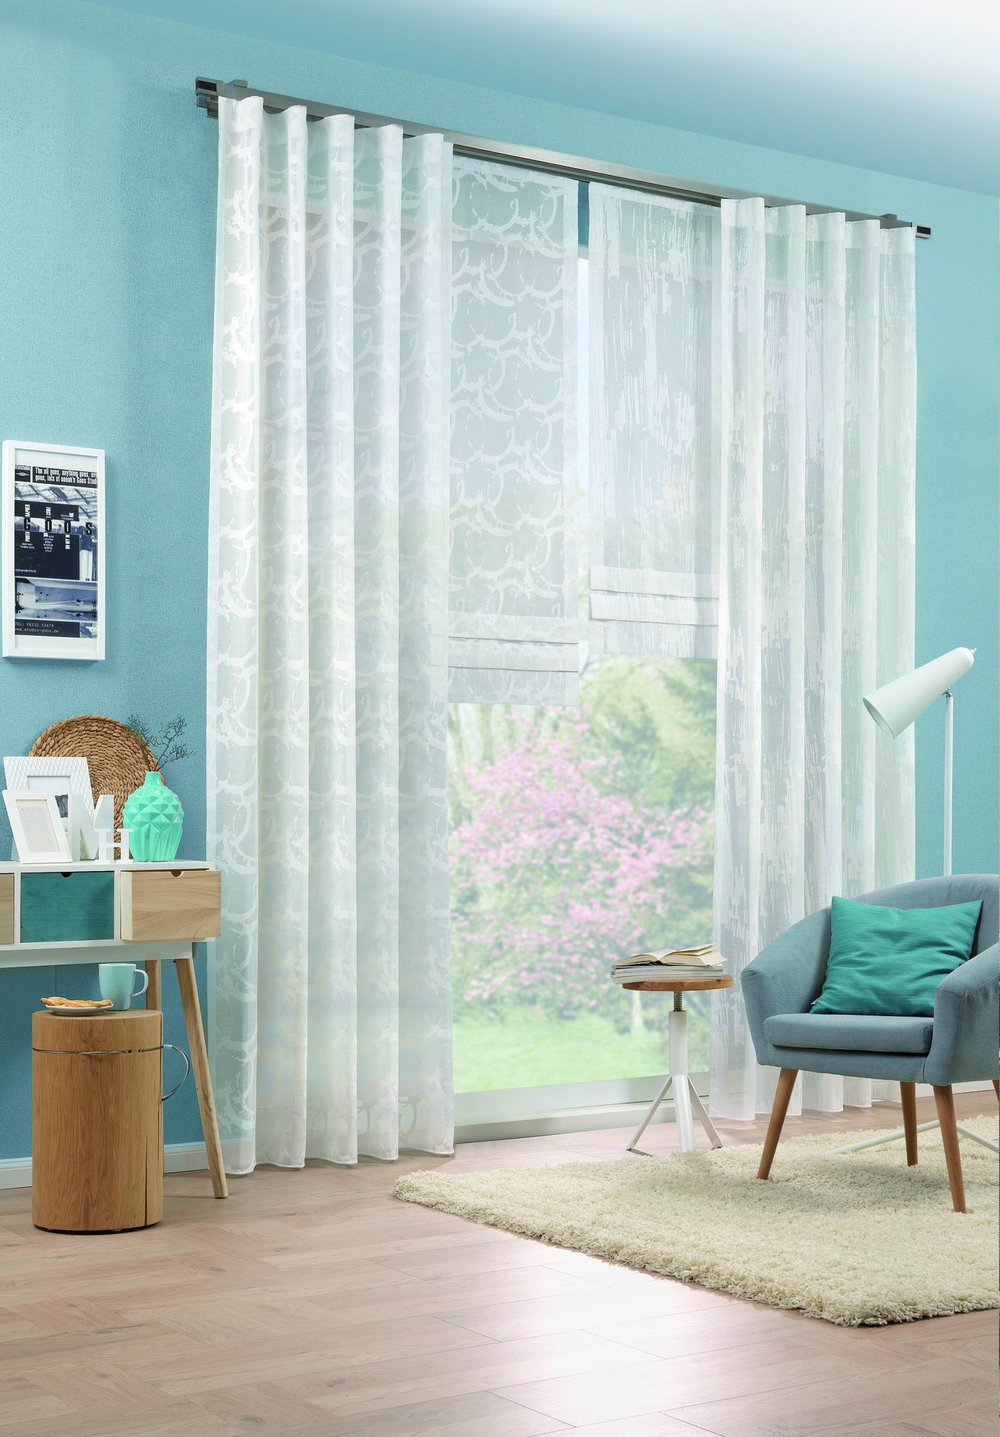 Curtains and deco fabrics - High-contrast designs, intense colors, universal application.